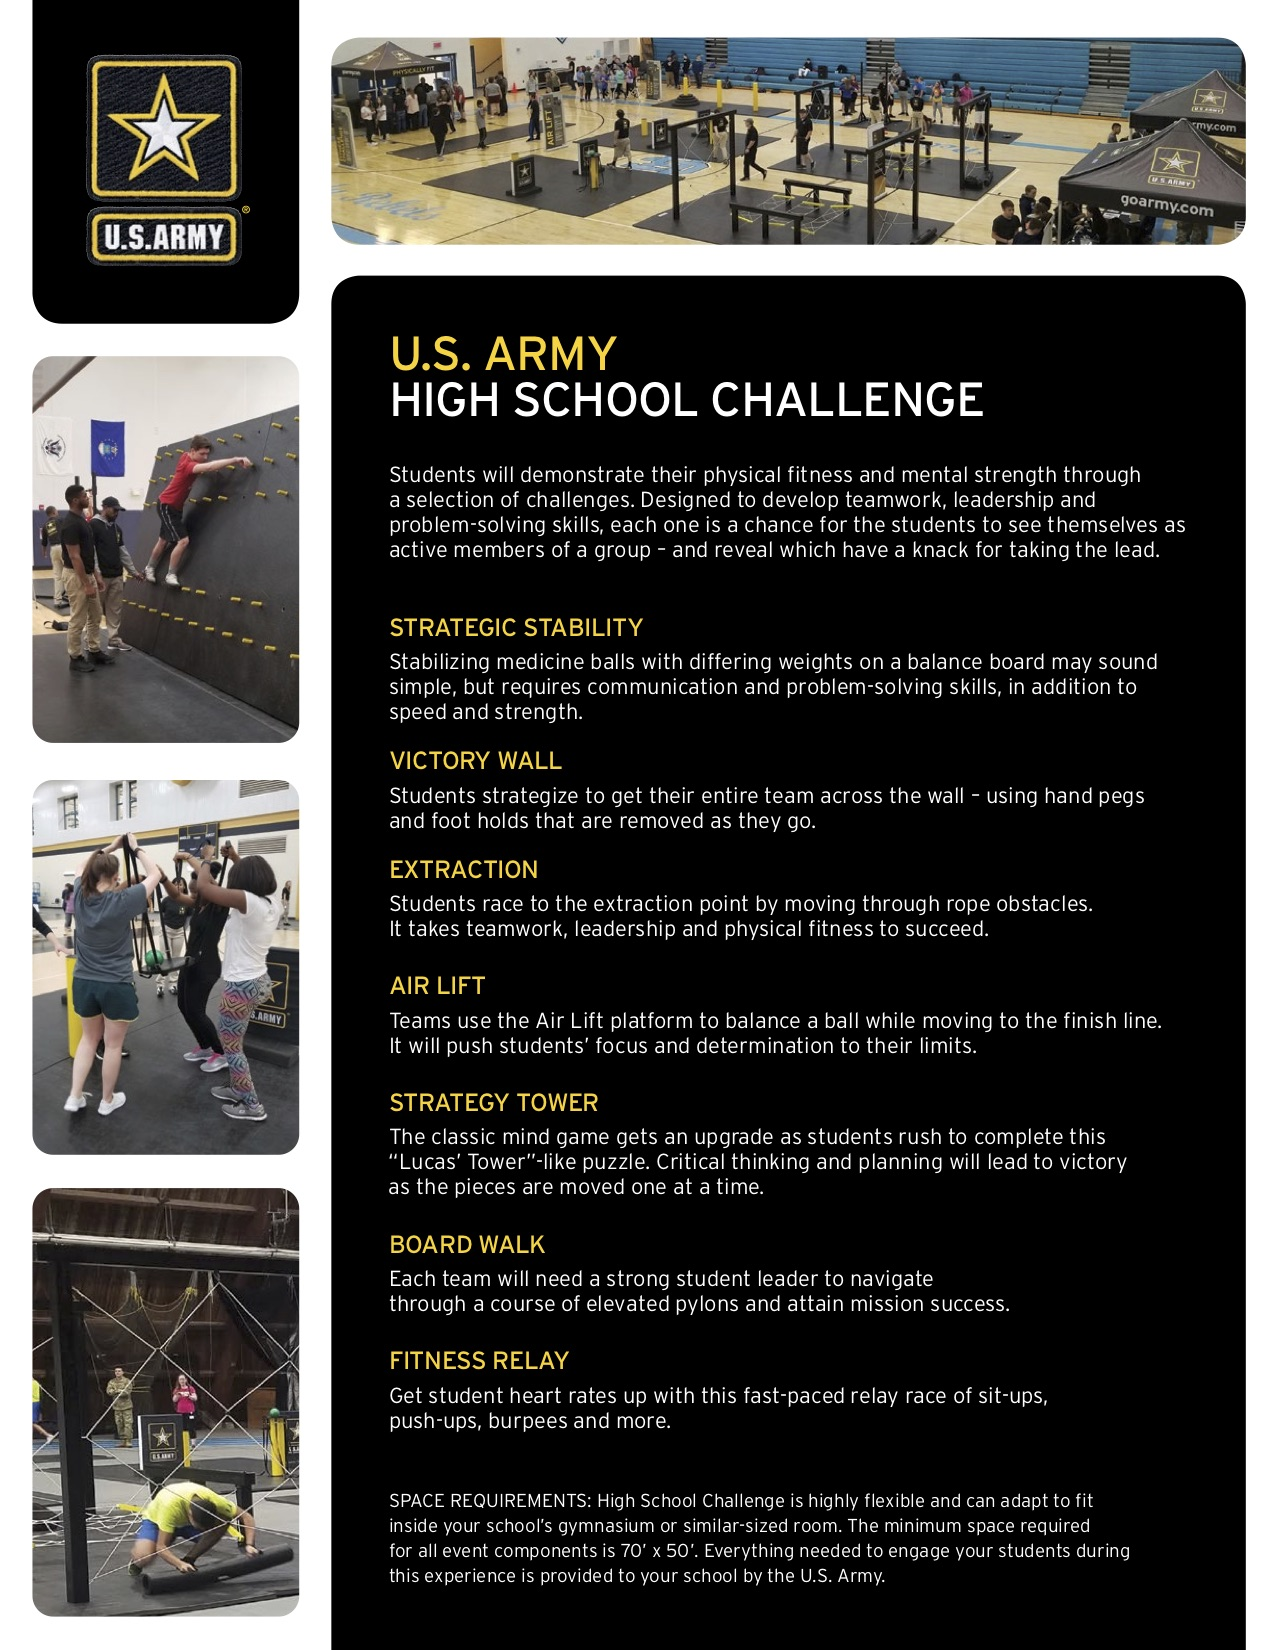 NRHS hosts the U.S. Army High School Challenge